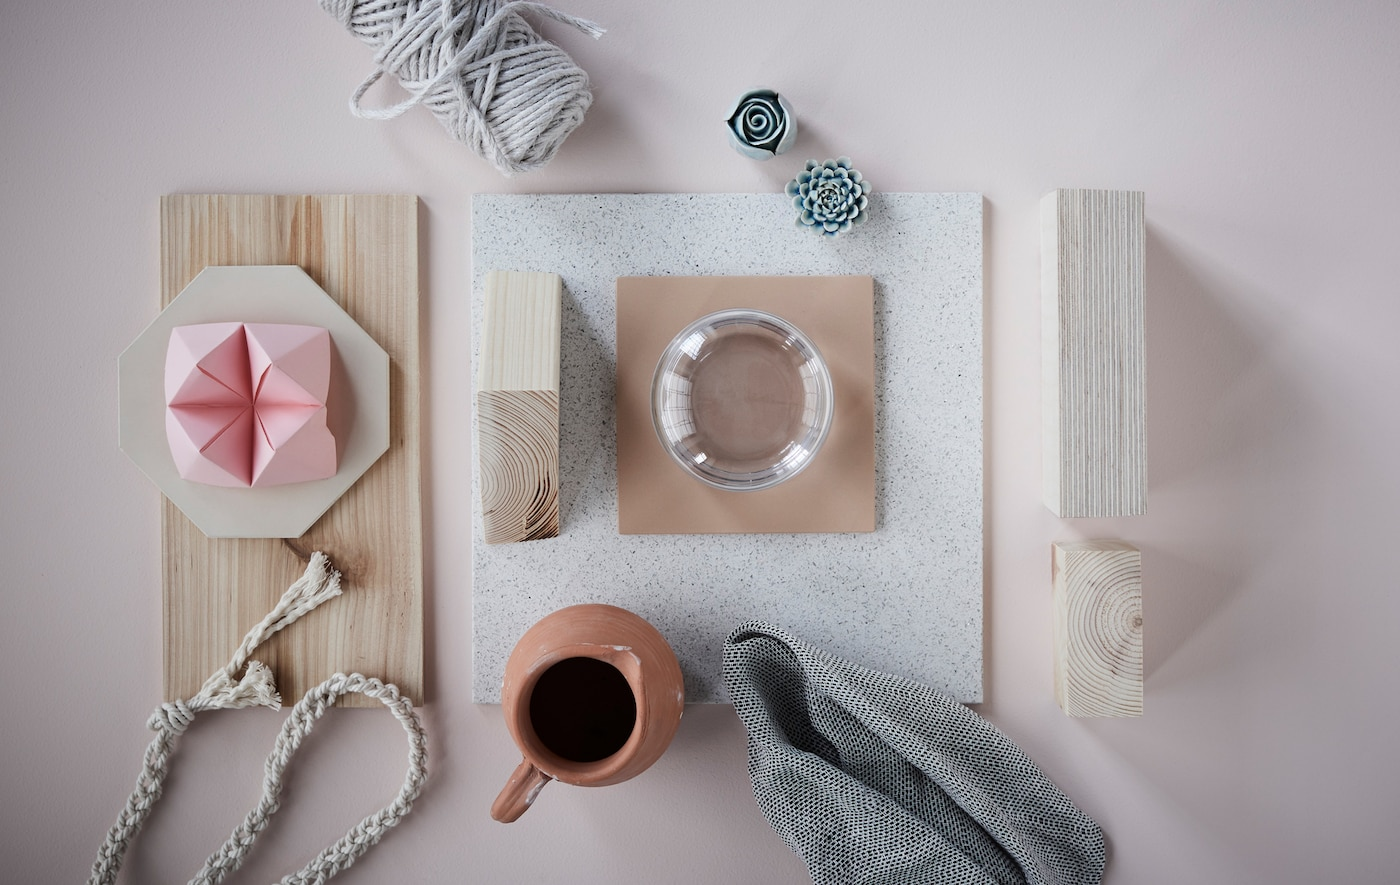 A collage of light wood, textiles and ceramics.